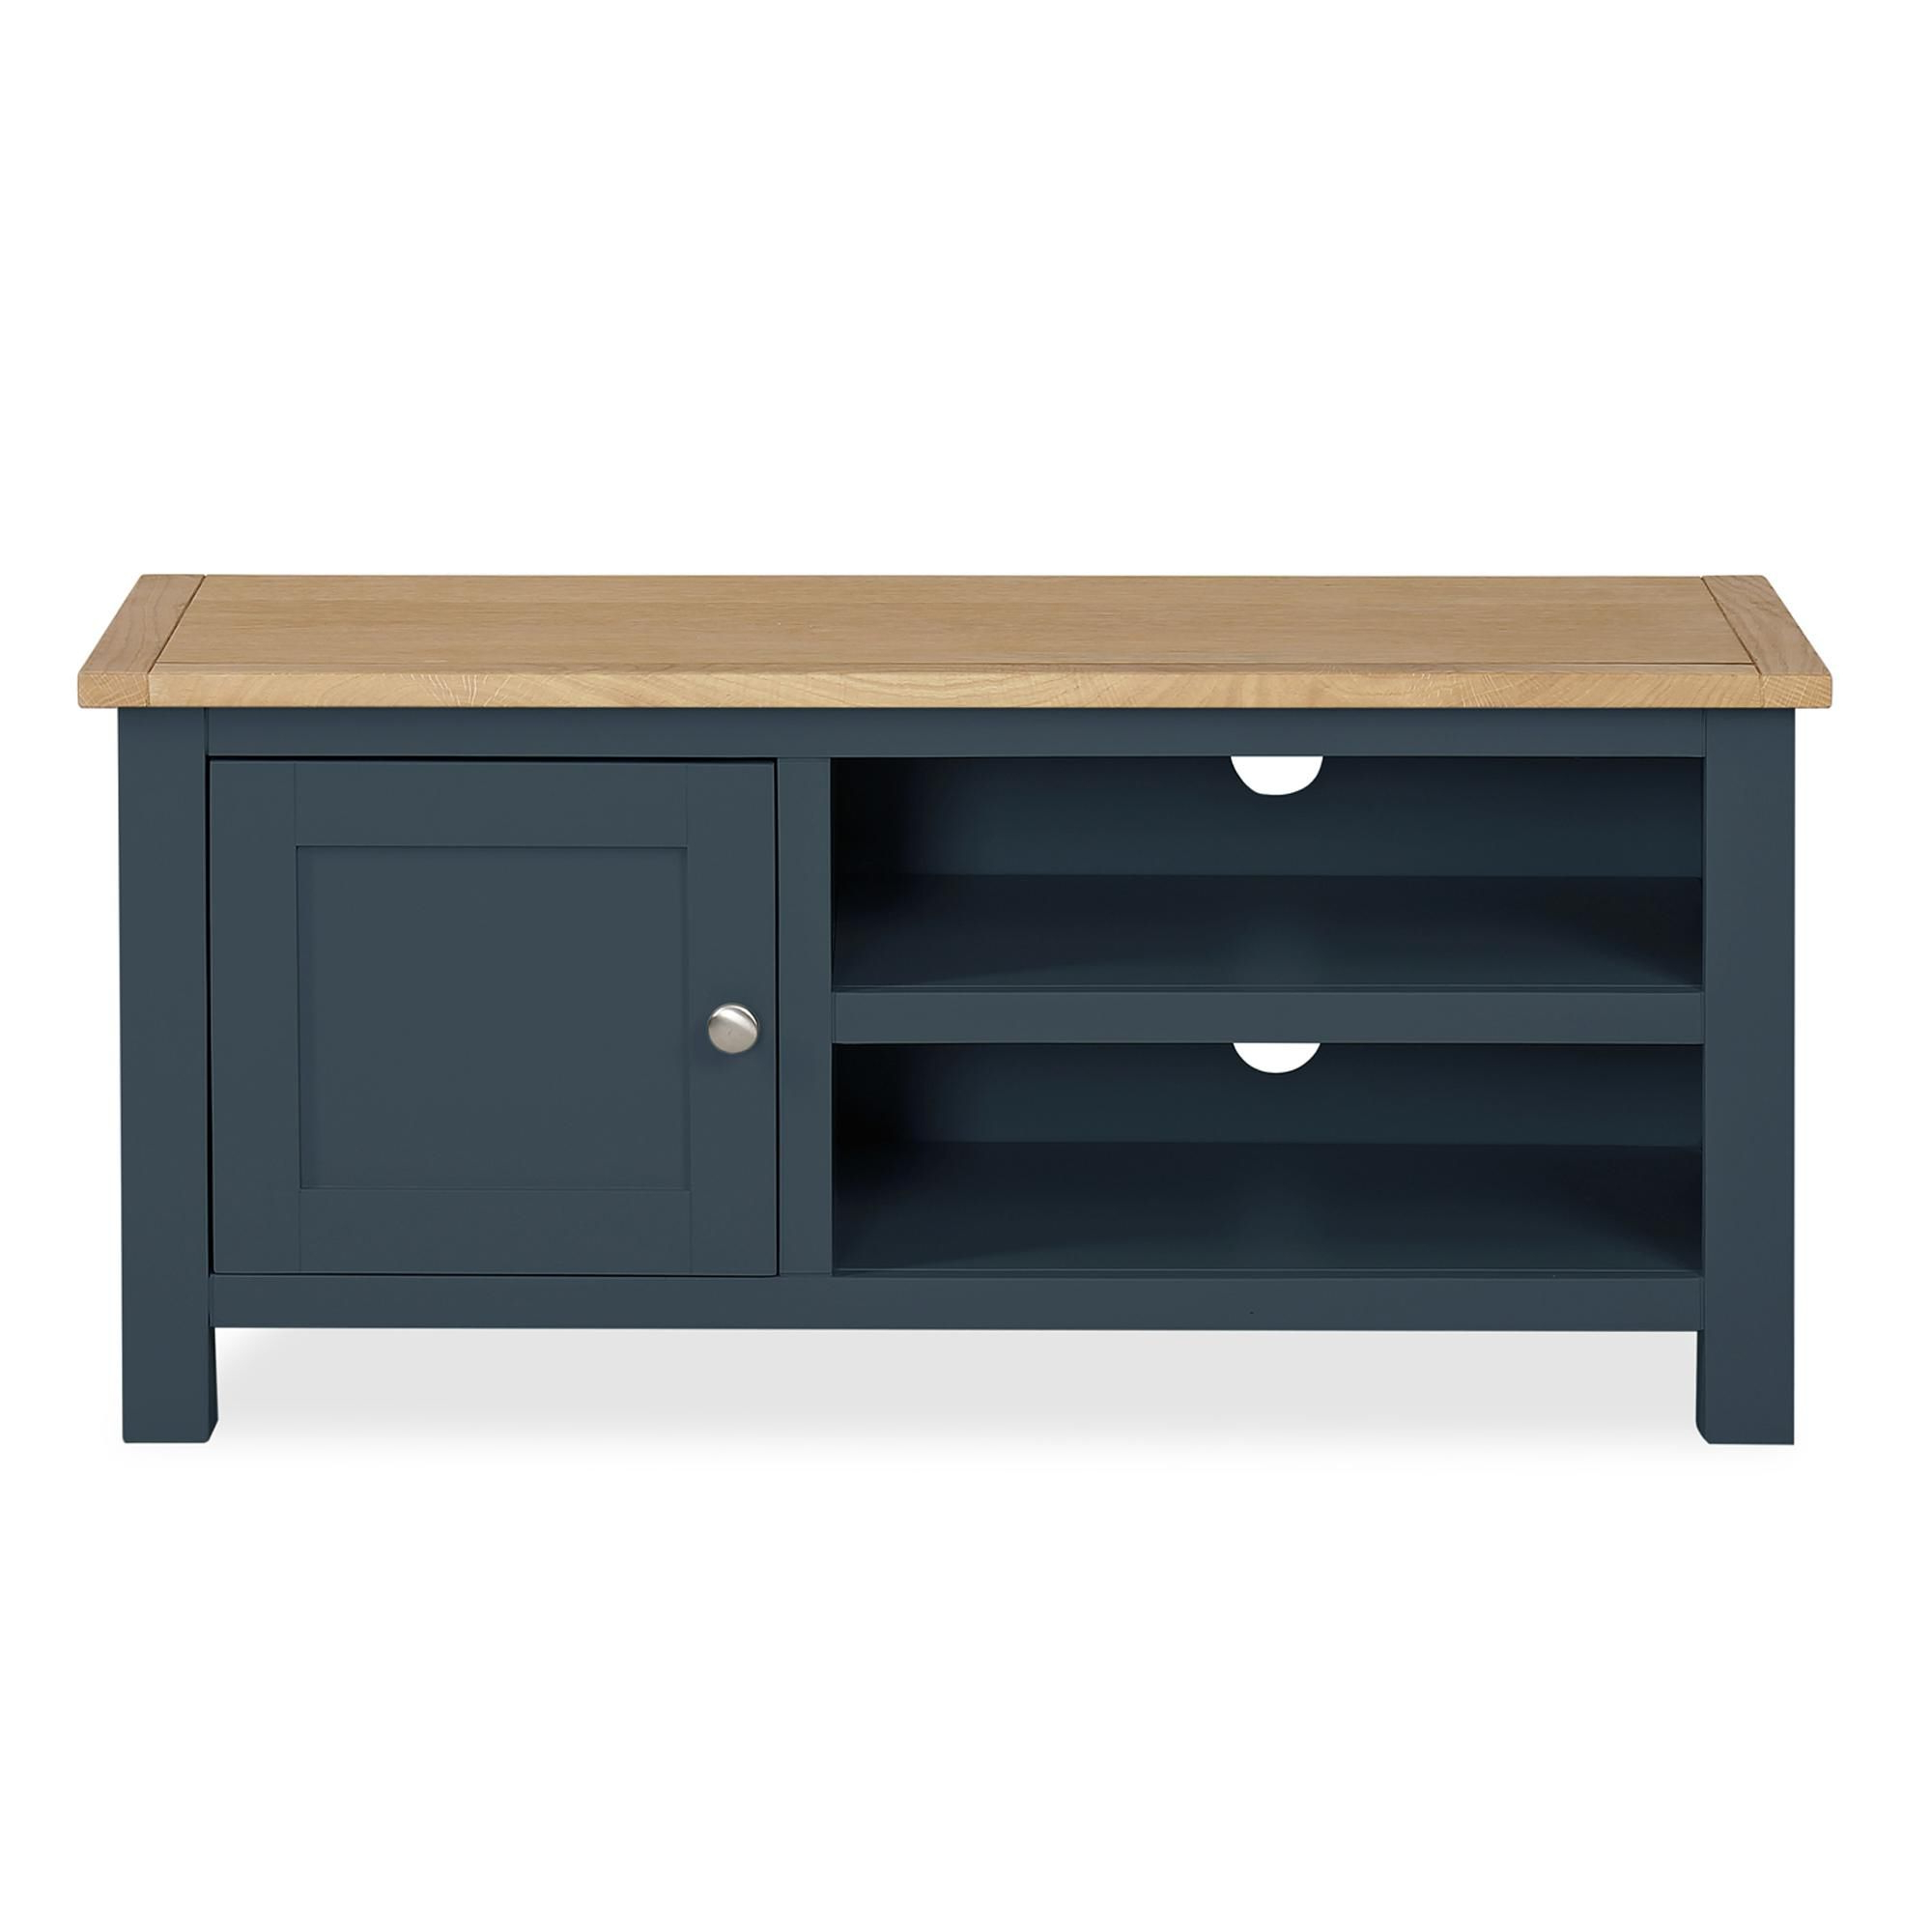 Bromley Blue Tv Stand | Blue Tv Stand, Wooden Tv Stands Throughout Bromley Oak Tv Stands (View 2 of 20)